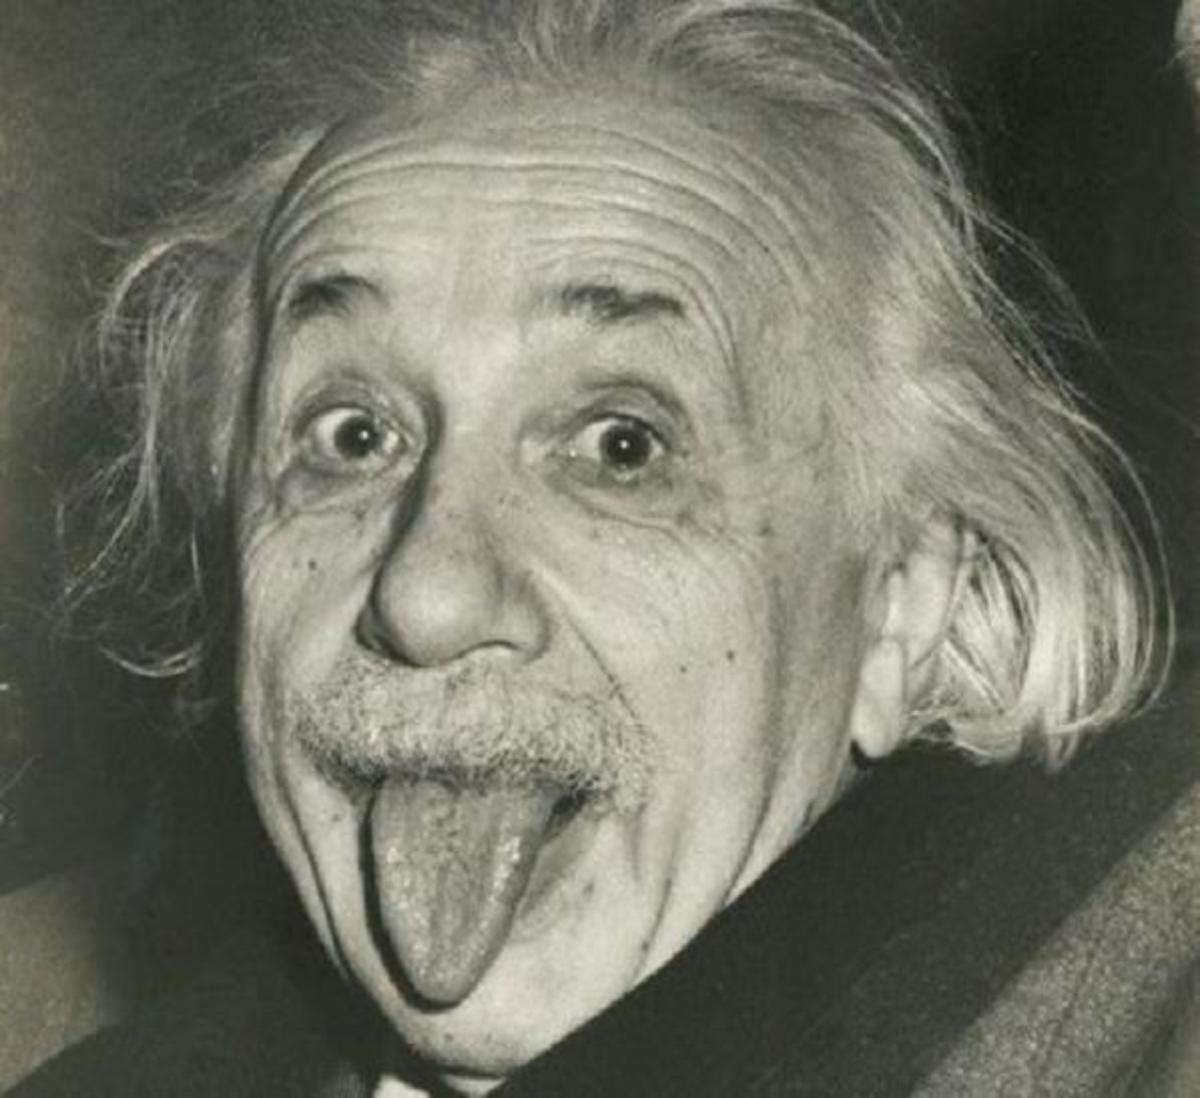 Original Photo of Einstein Sticking out His Tongue